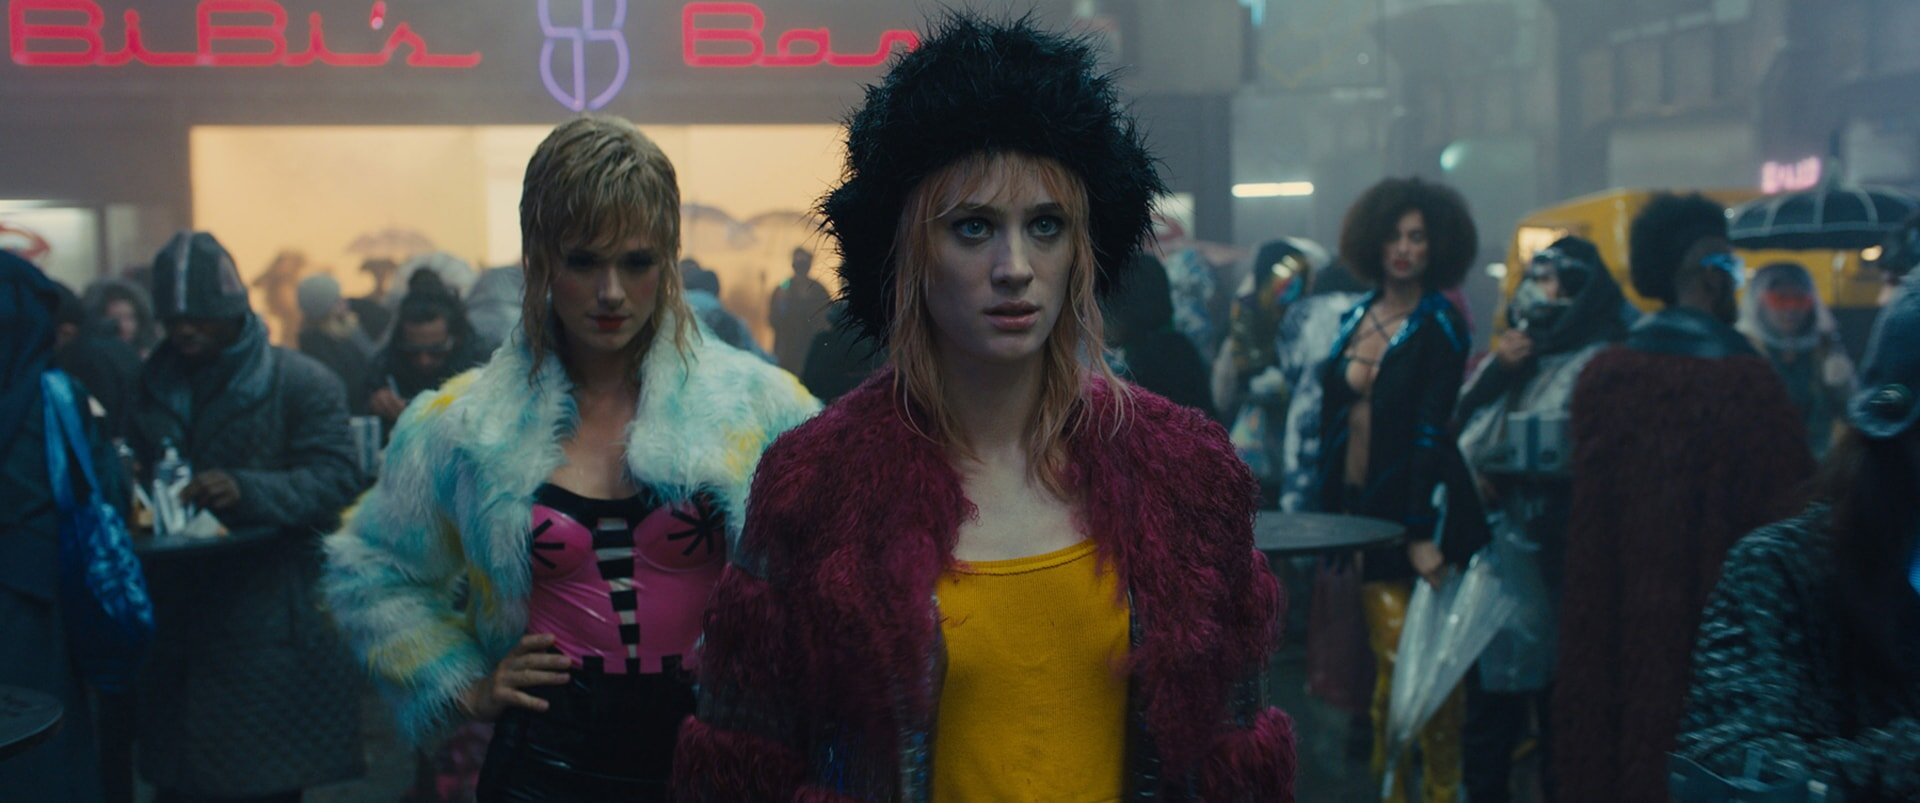 "MACKENZIE DAVIS as Mariette in Alcon Entertainment's action thriller ""BLADE RUNNER 2049,"" a Warner Bros. Pictures and Sony Pictures Entertainment release, domestic distribution by Warner Bros. Pictures and international distribution by Sony Pictures."